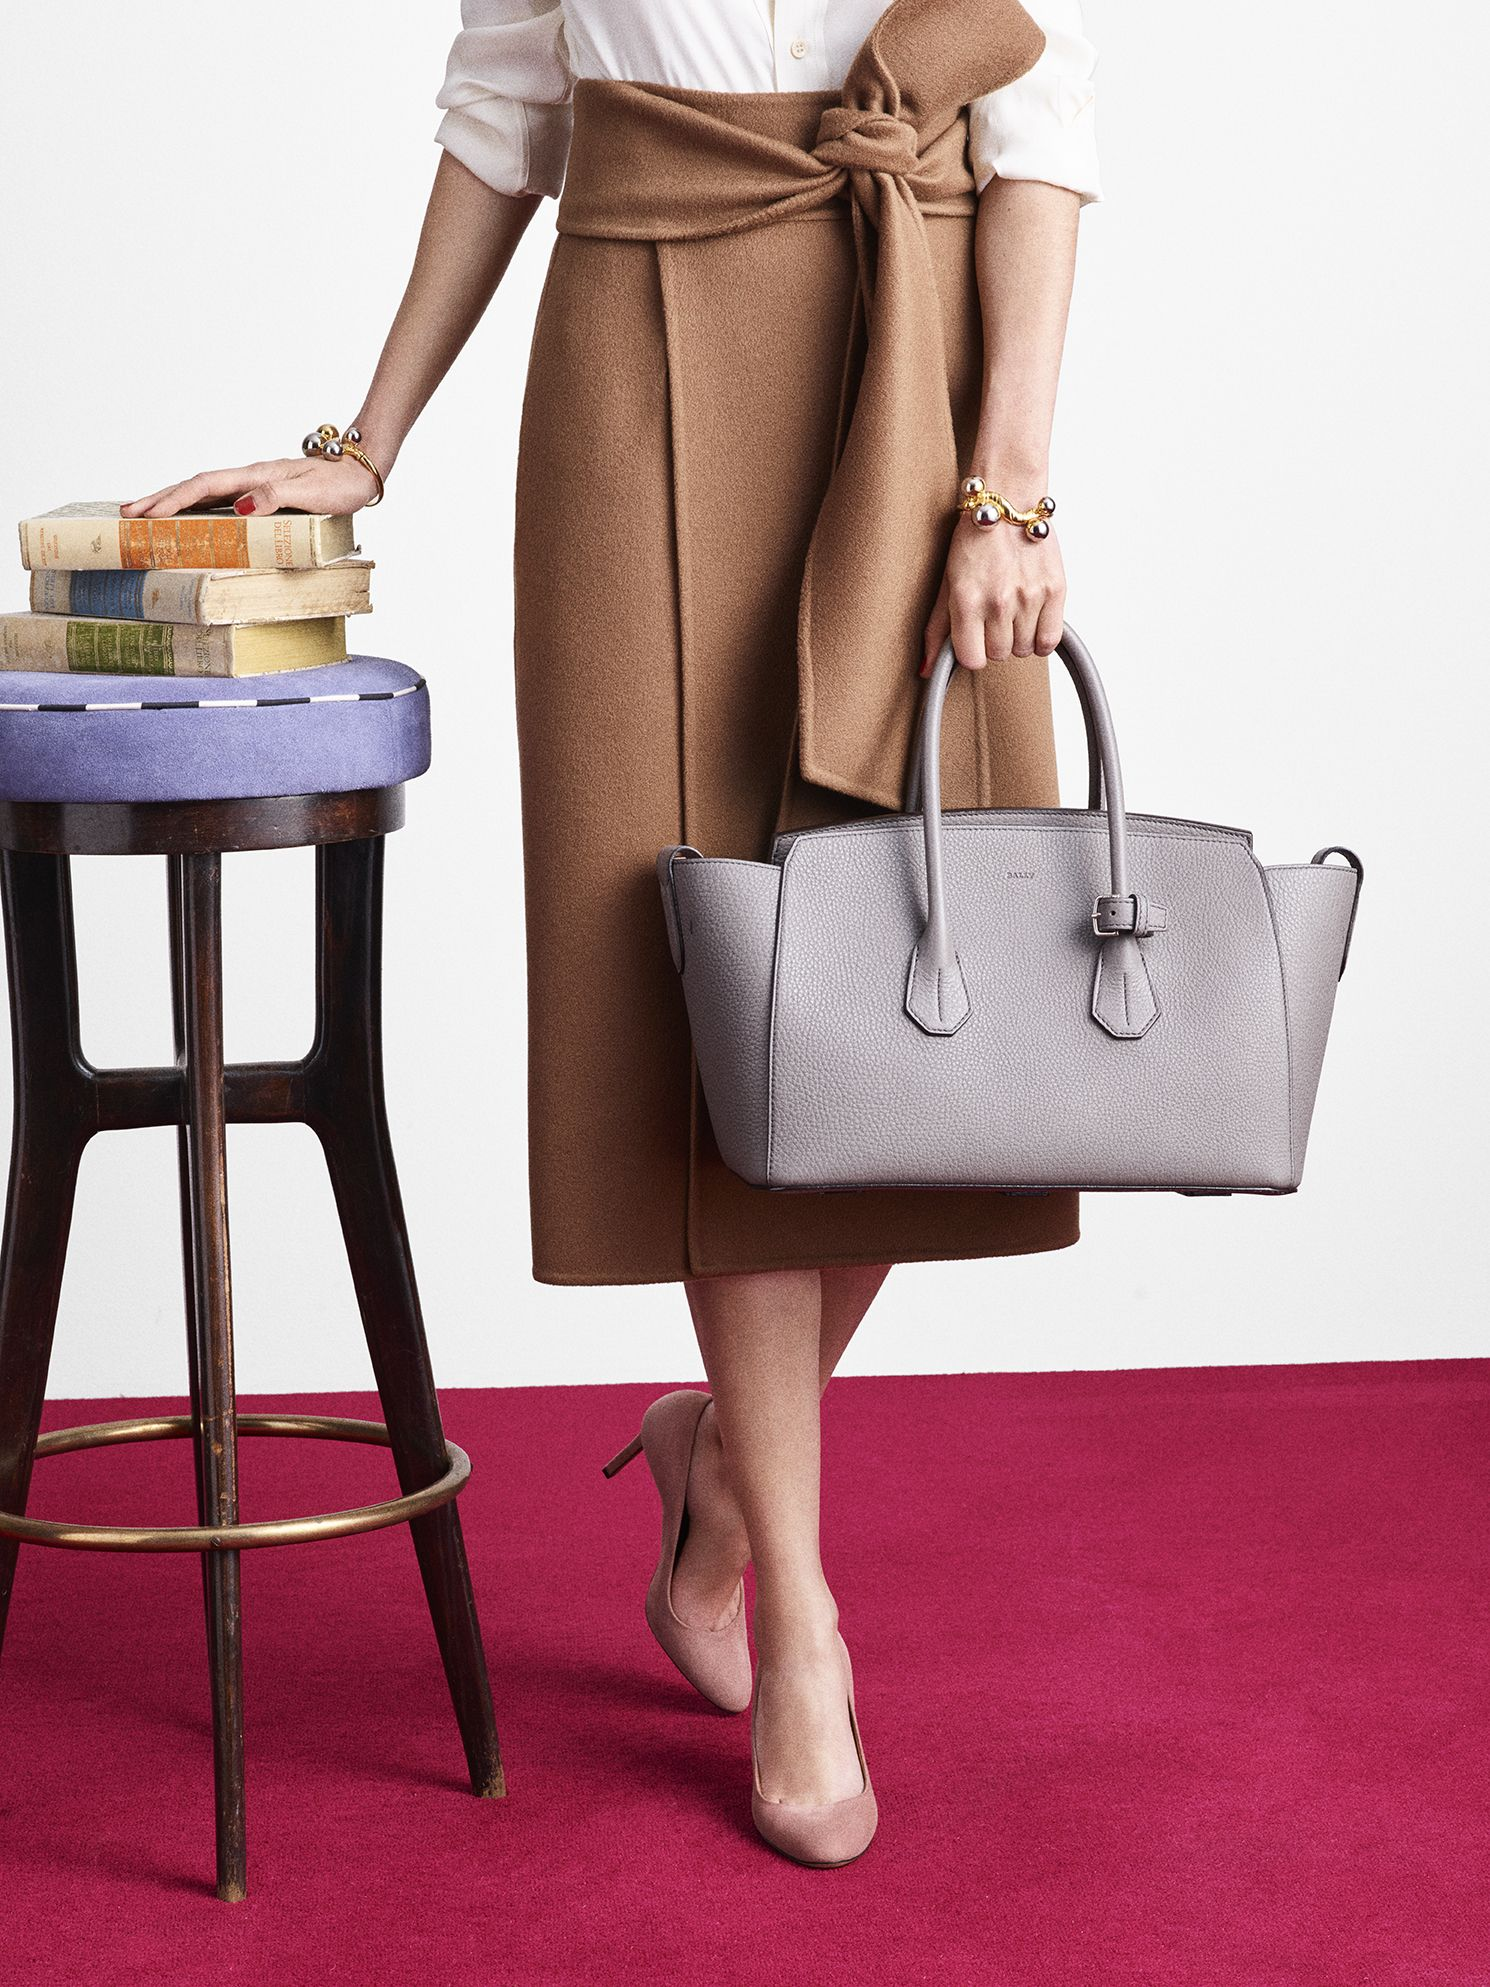 90086e9b3 Bally Sommet bag | W36-2016-Bekleidung in 2019 | Bally bag, Bags ...